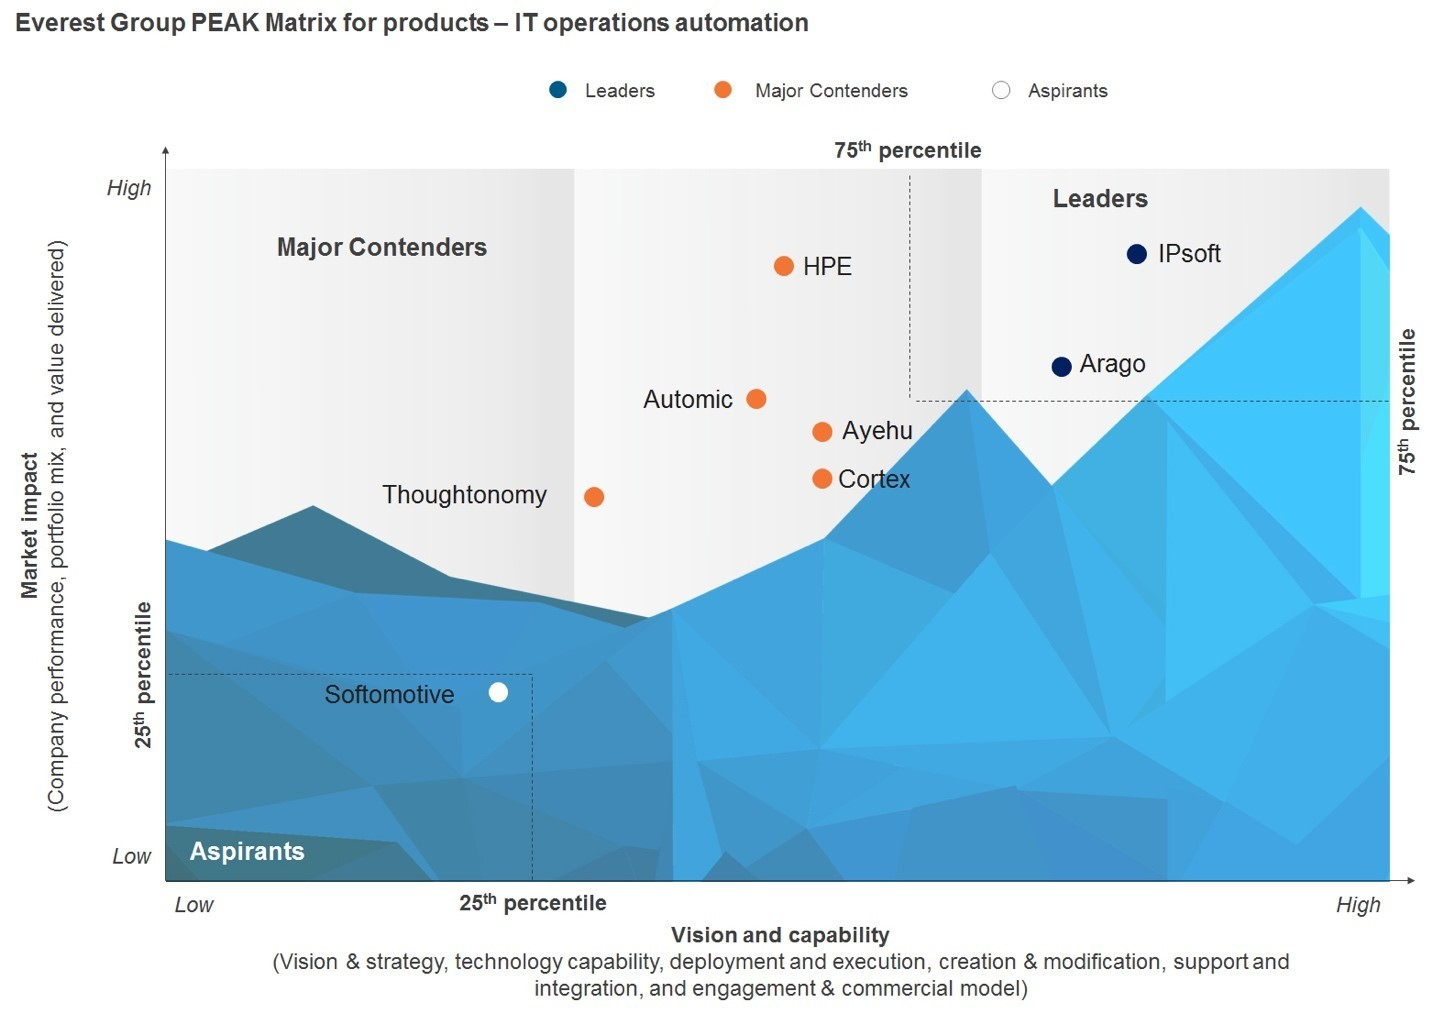 Everest Group has named IPsoft as the top Leader in the research firm's recent IT infrastructure automation - Market Update and PEAK Matrix™ Assessment for Products report. (Credit: Everest Group, 2017)